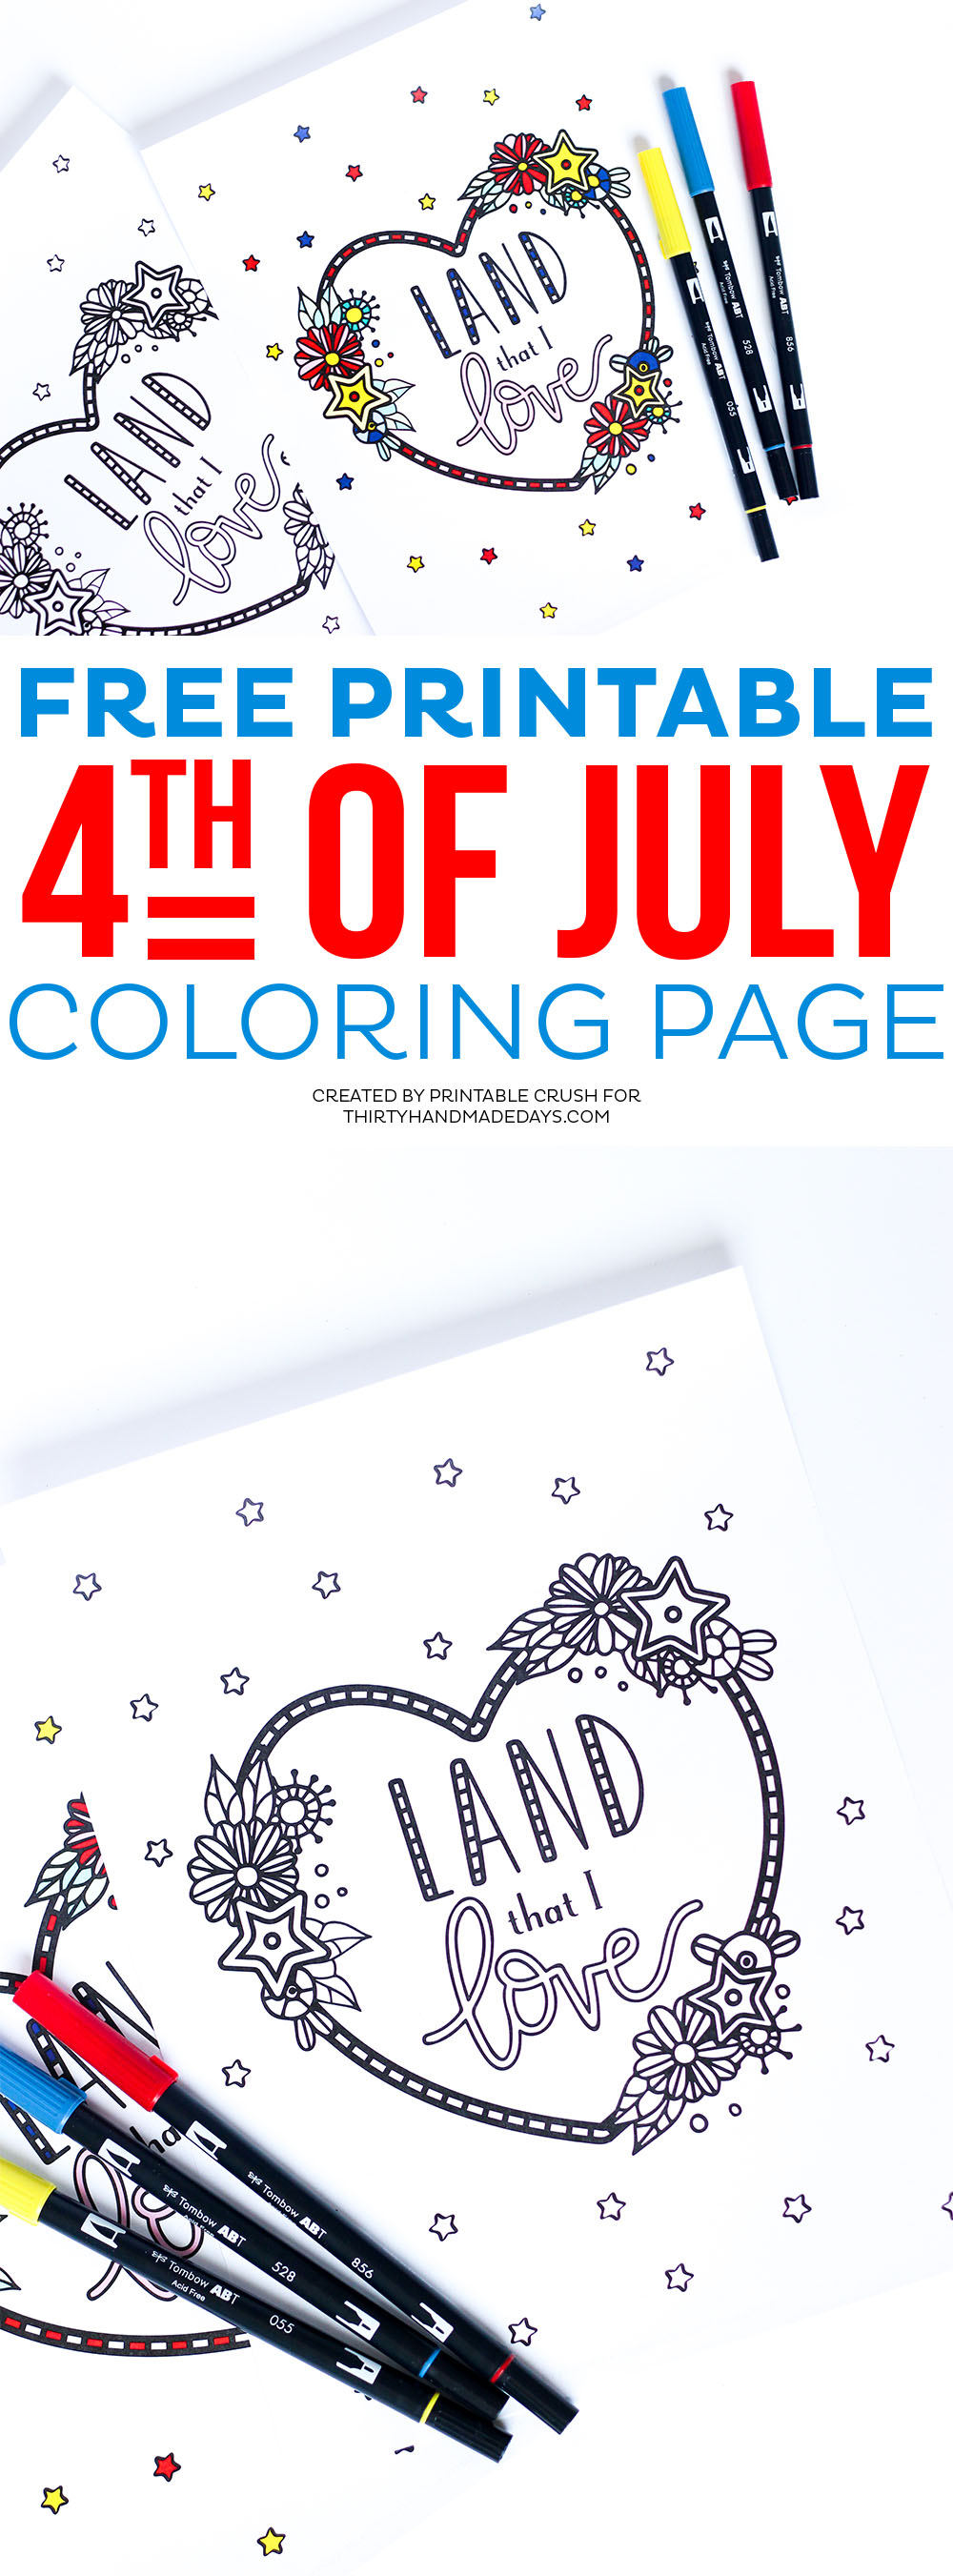 Download this pretty FREE Printable 4th of July Coloring Page for your kids or for guests at your Independence Day party!